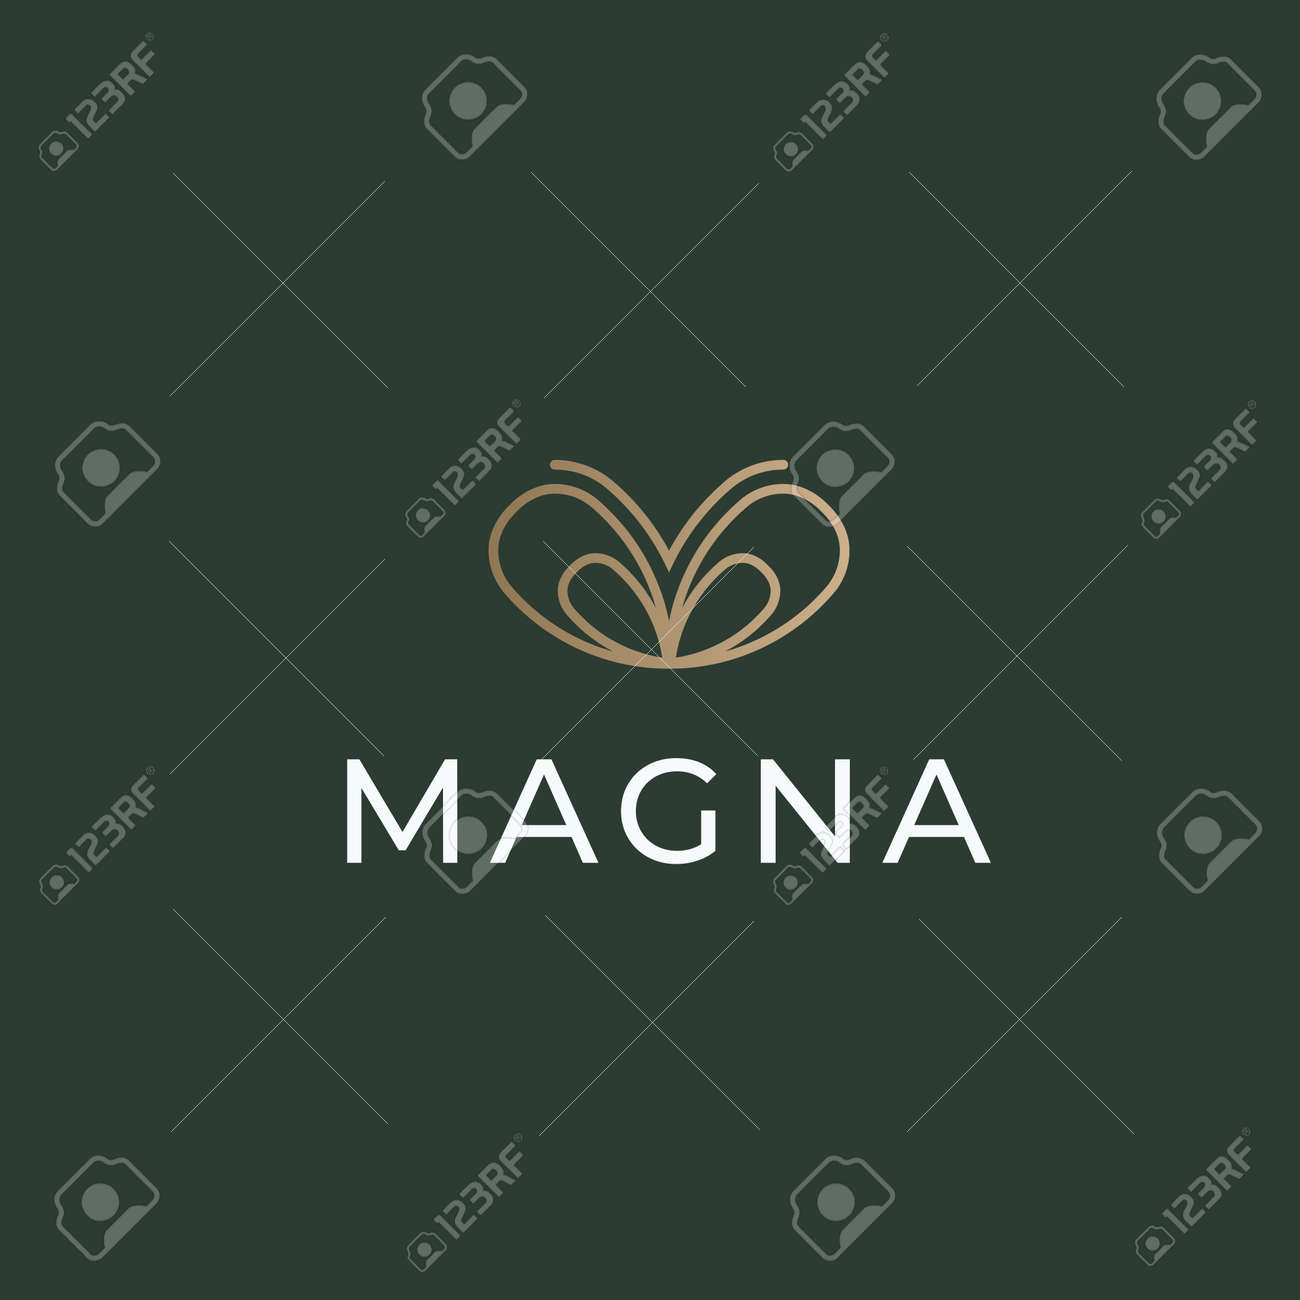 Butterfly line logo icon design vector - 167837741